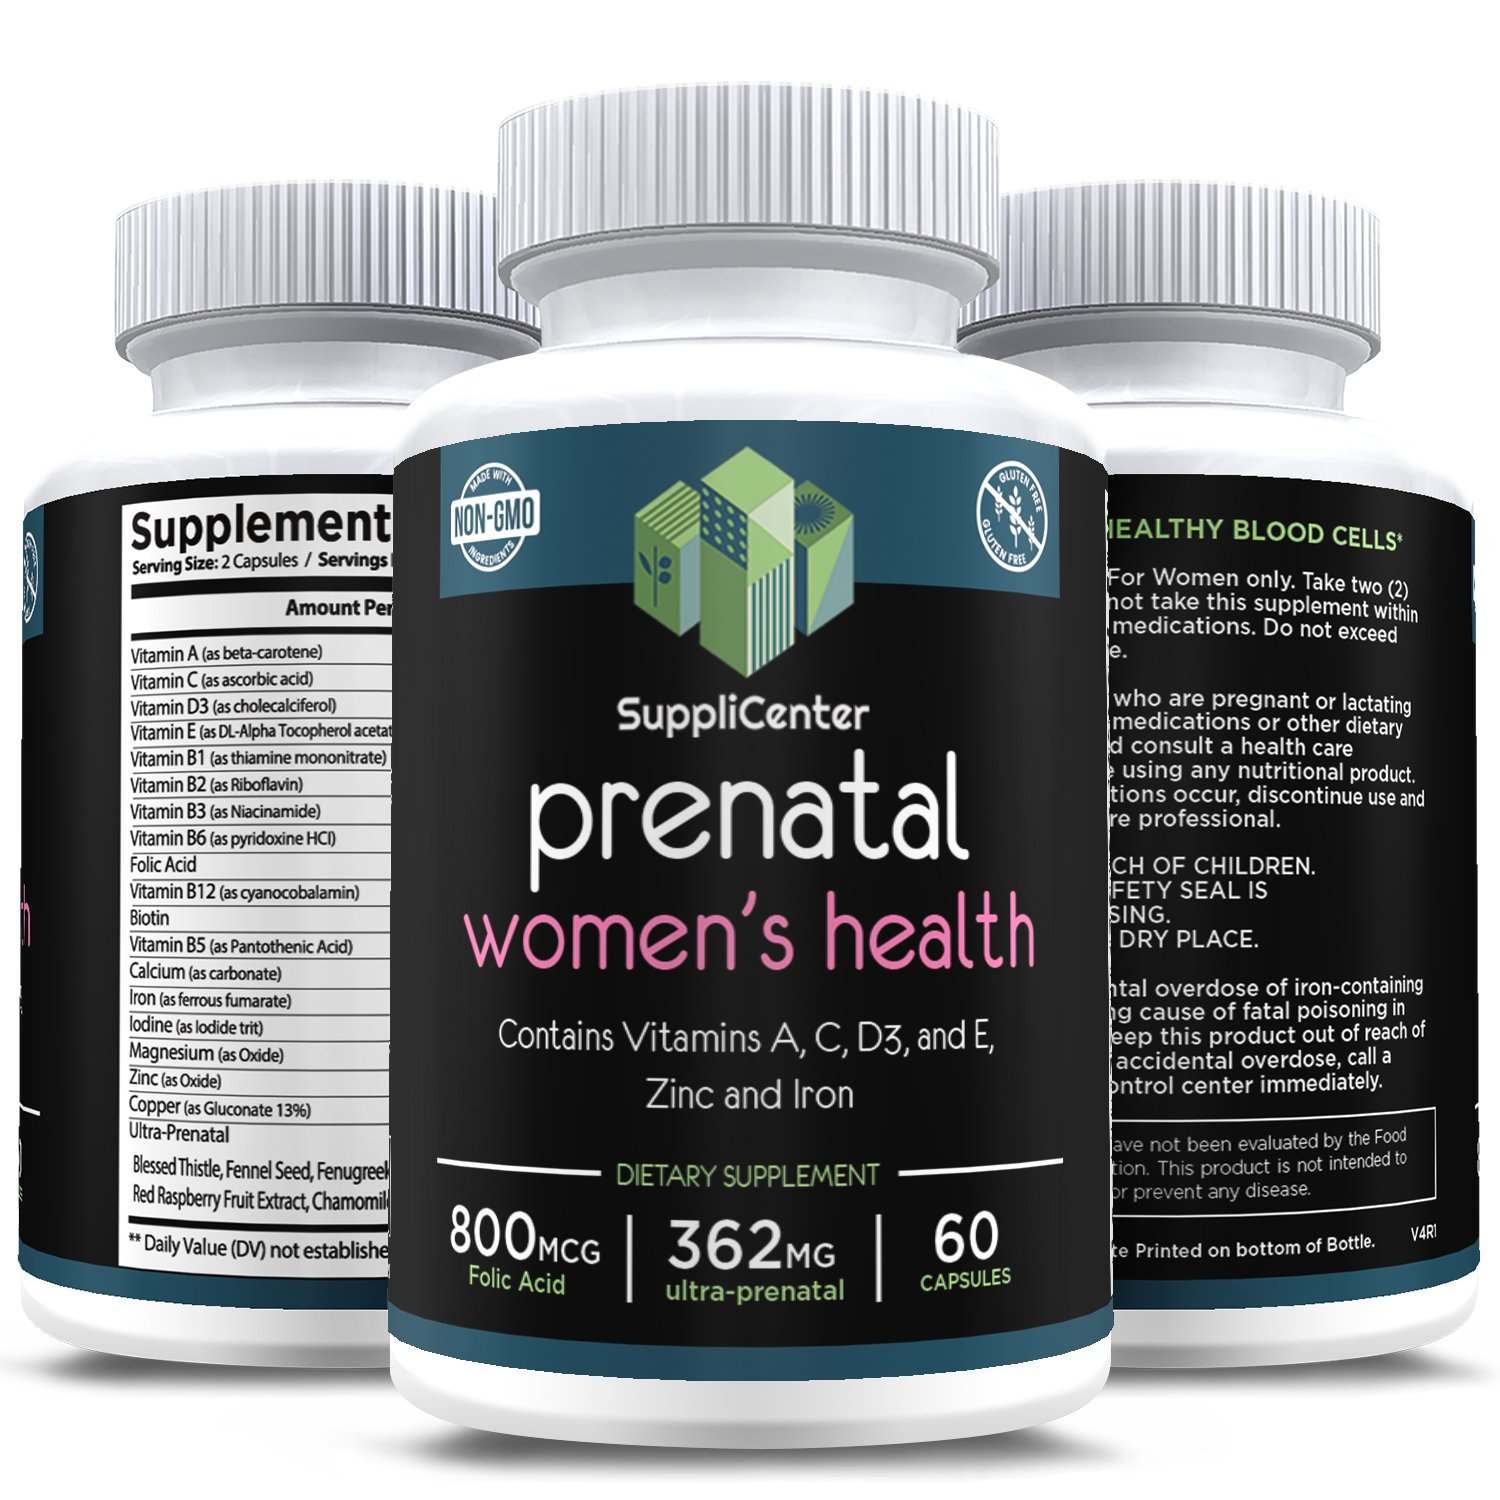 Amazon.com: SuppliCenter Womens Health Prenatal Multi Vitamin, w/Vitamin A,C,D3, E, Zinc and Iron, 362mg Ultra-Prenatal 60 Count (60): Health & Personal ...